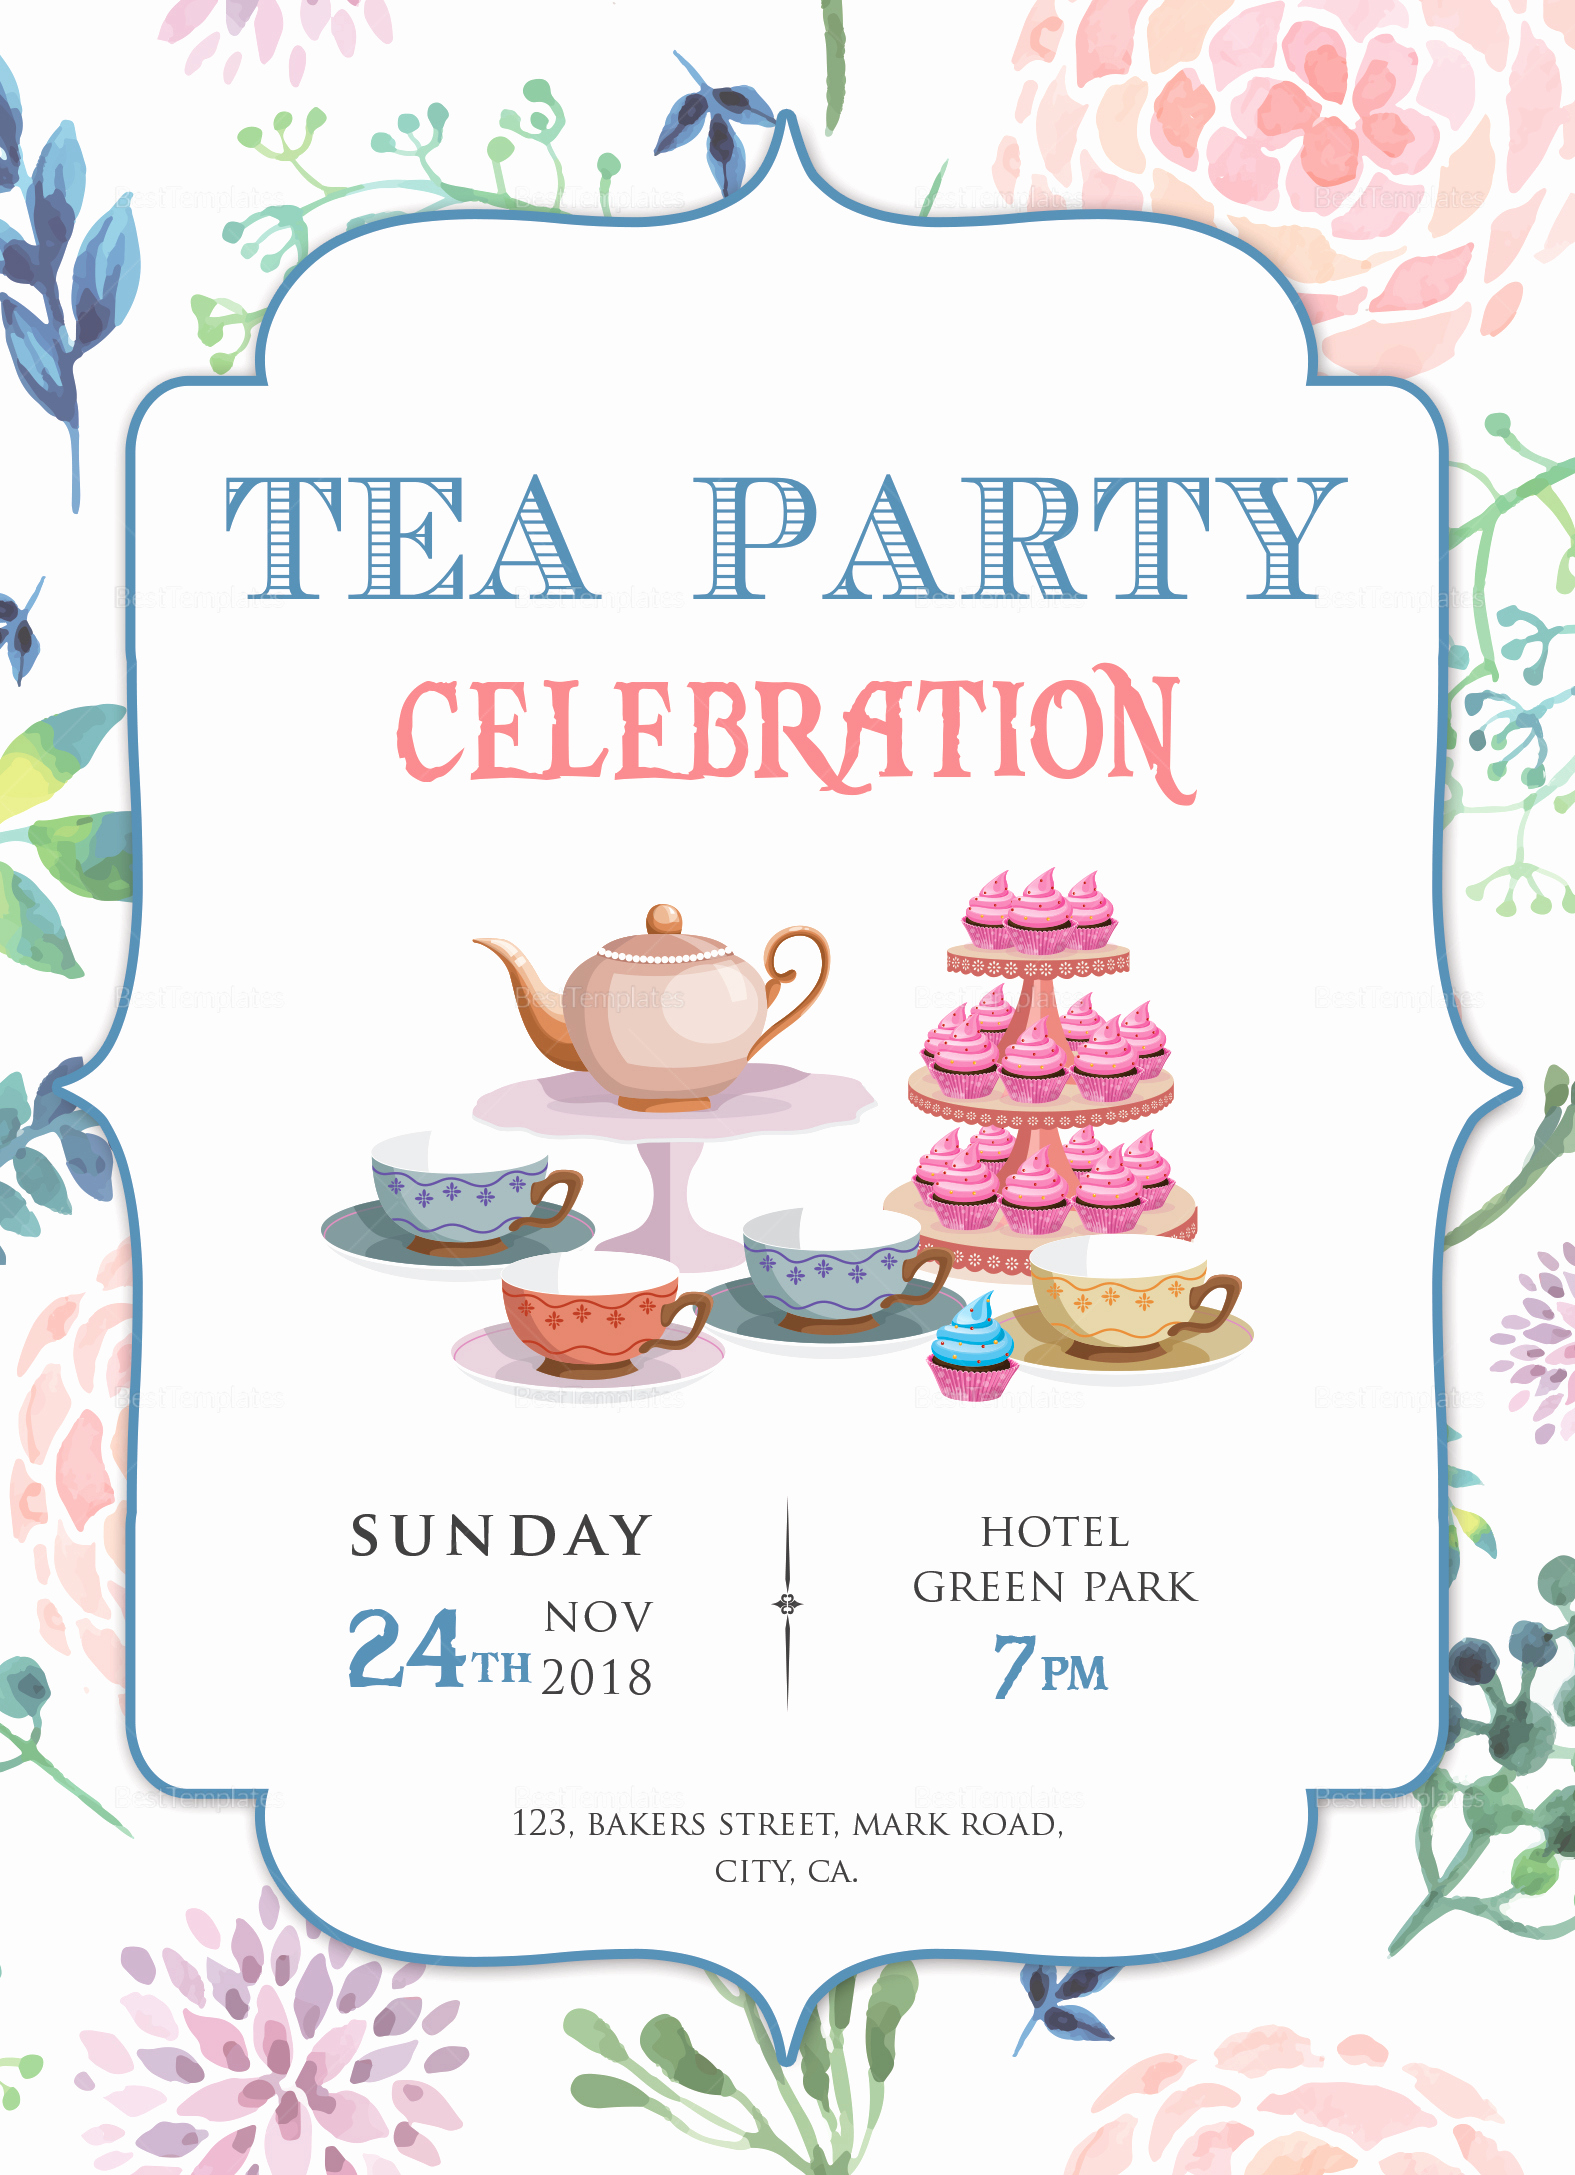 Tea Party Invitation Template Word Beautiful Elegant Tea Party Invitation Design Template In Word Psd